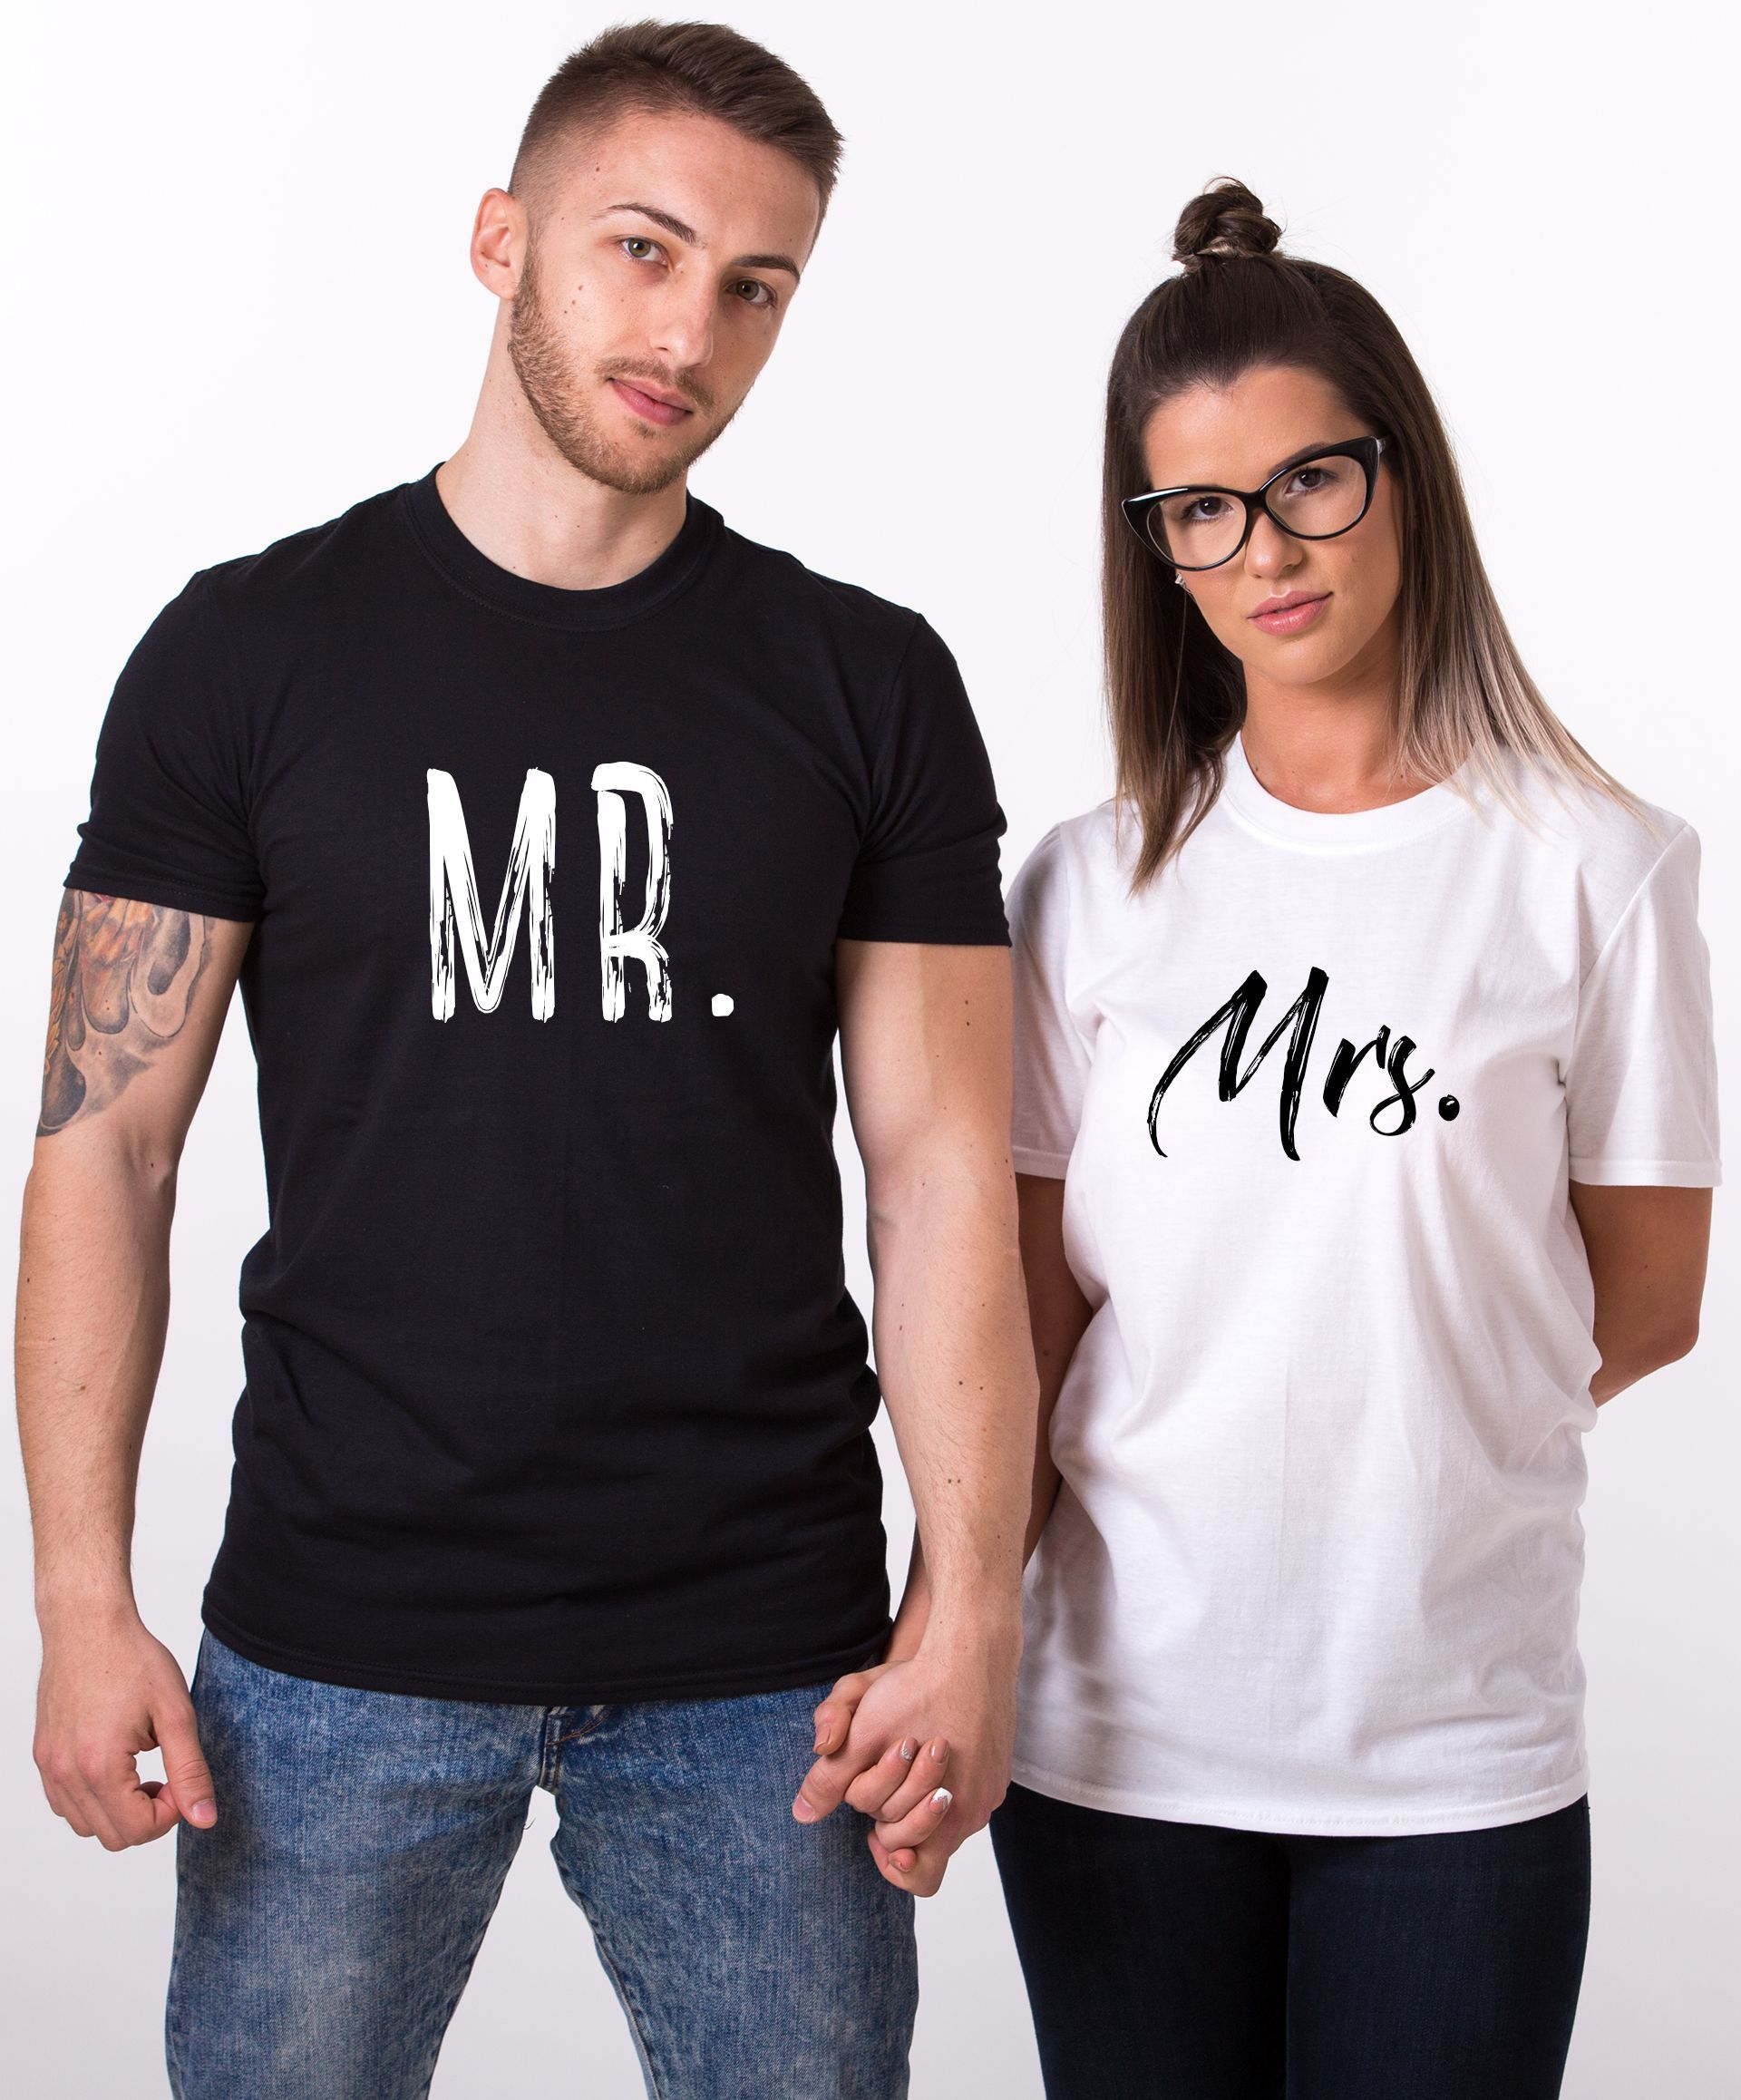 Mr. Mrs. Shirts, Matching Couples Shirts. Life is amazing shared with your special someone and a trendy set of matching shirts! Get yours now!